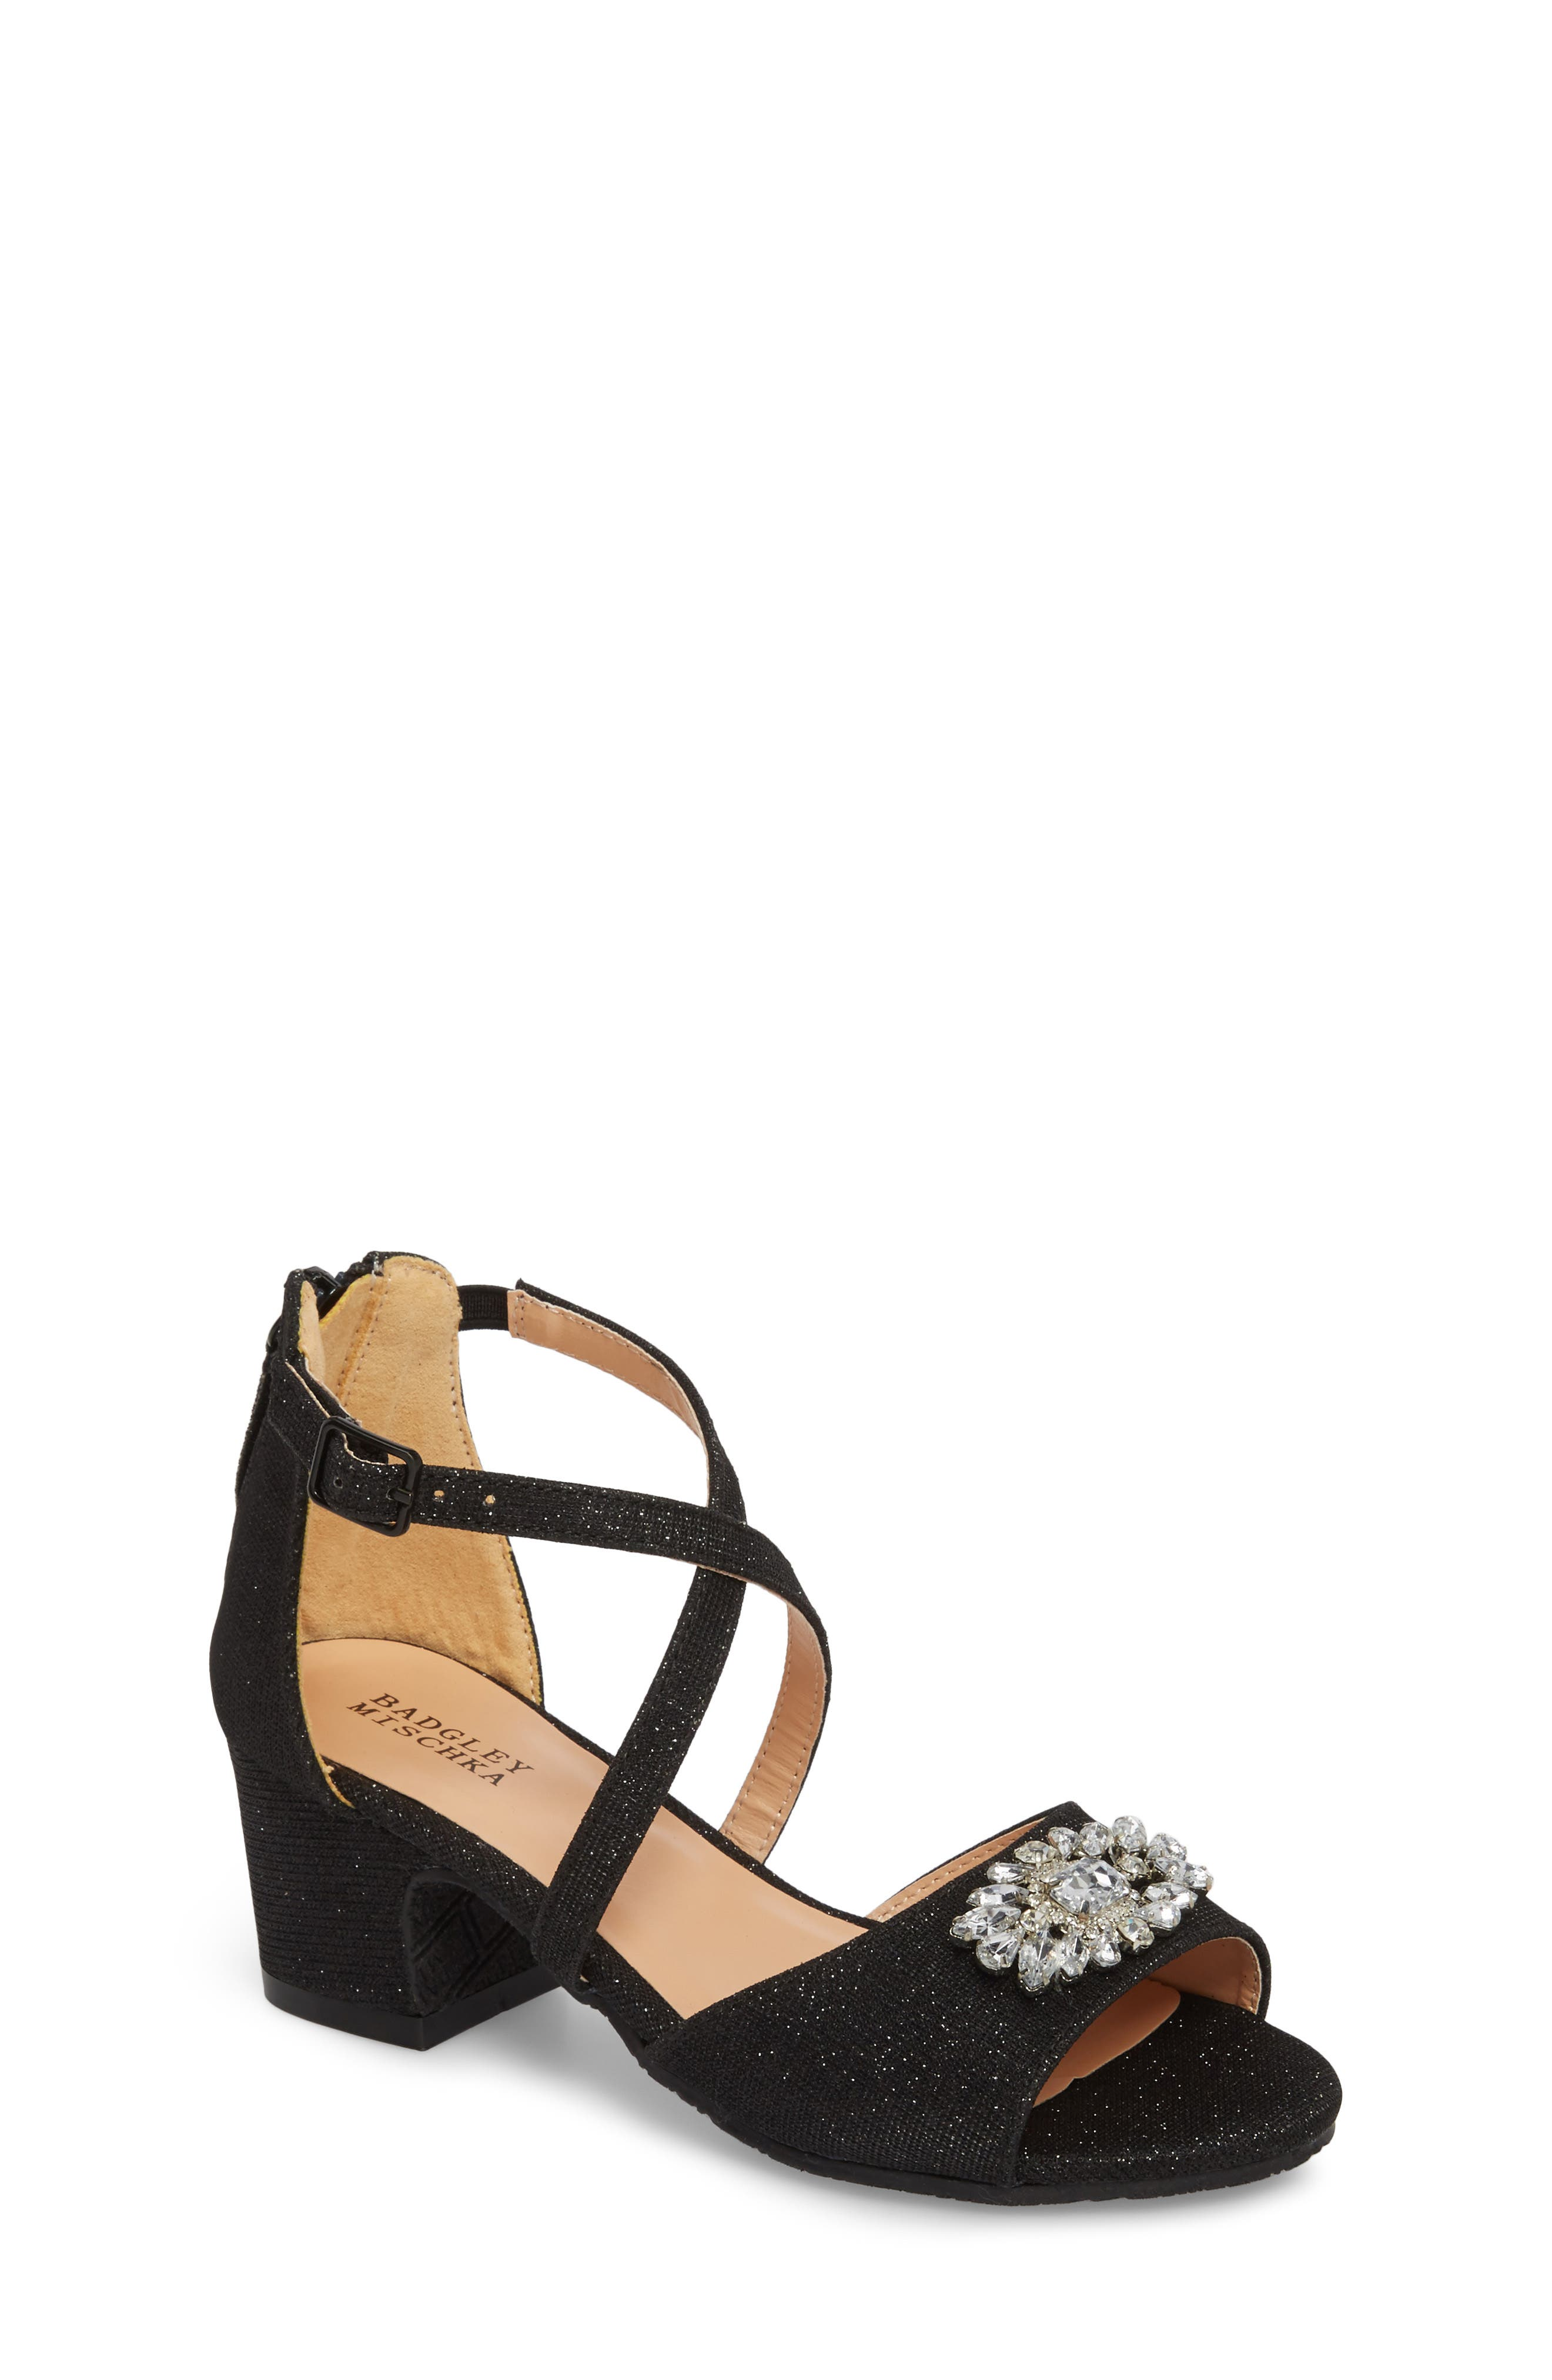 Badgley Mischka Pernia Gems Sandal (Toddler, Little Kid & Big Kid)